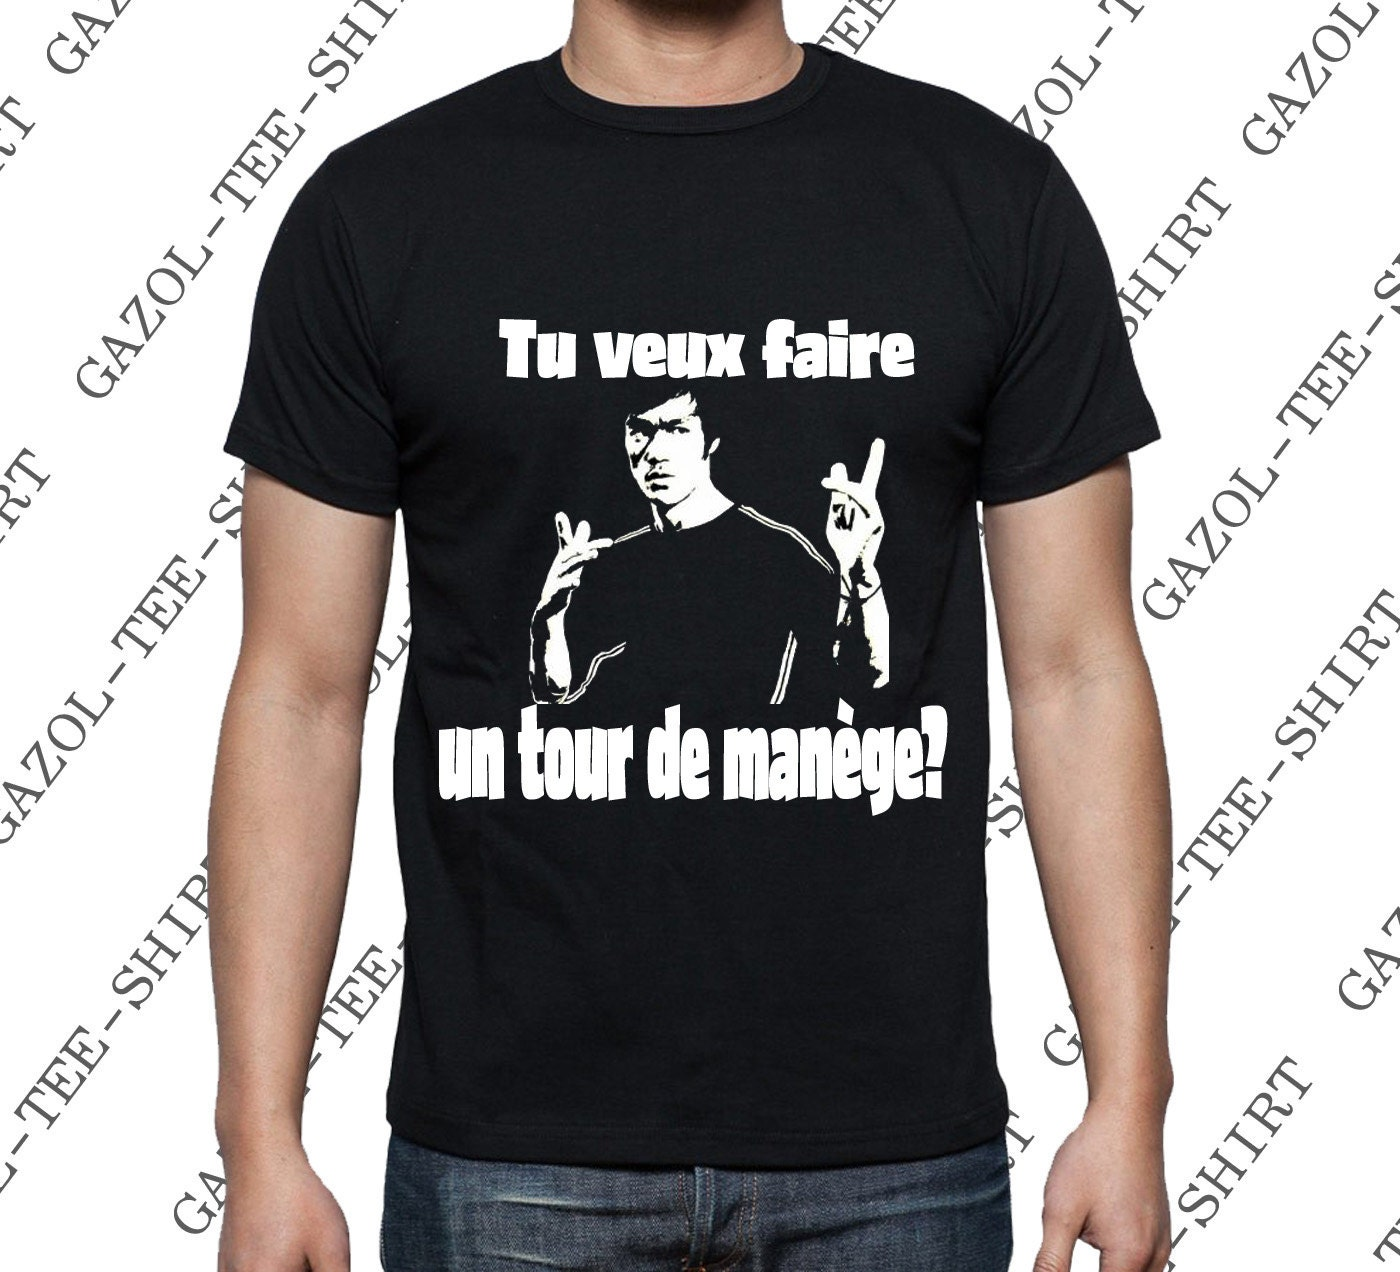 t shirt tu veux faire un tour de man ge tee shirt bruce lee id e cadeau noel anniversaire homme. Black Bedroom Furniture Sets. Home Design Ideas